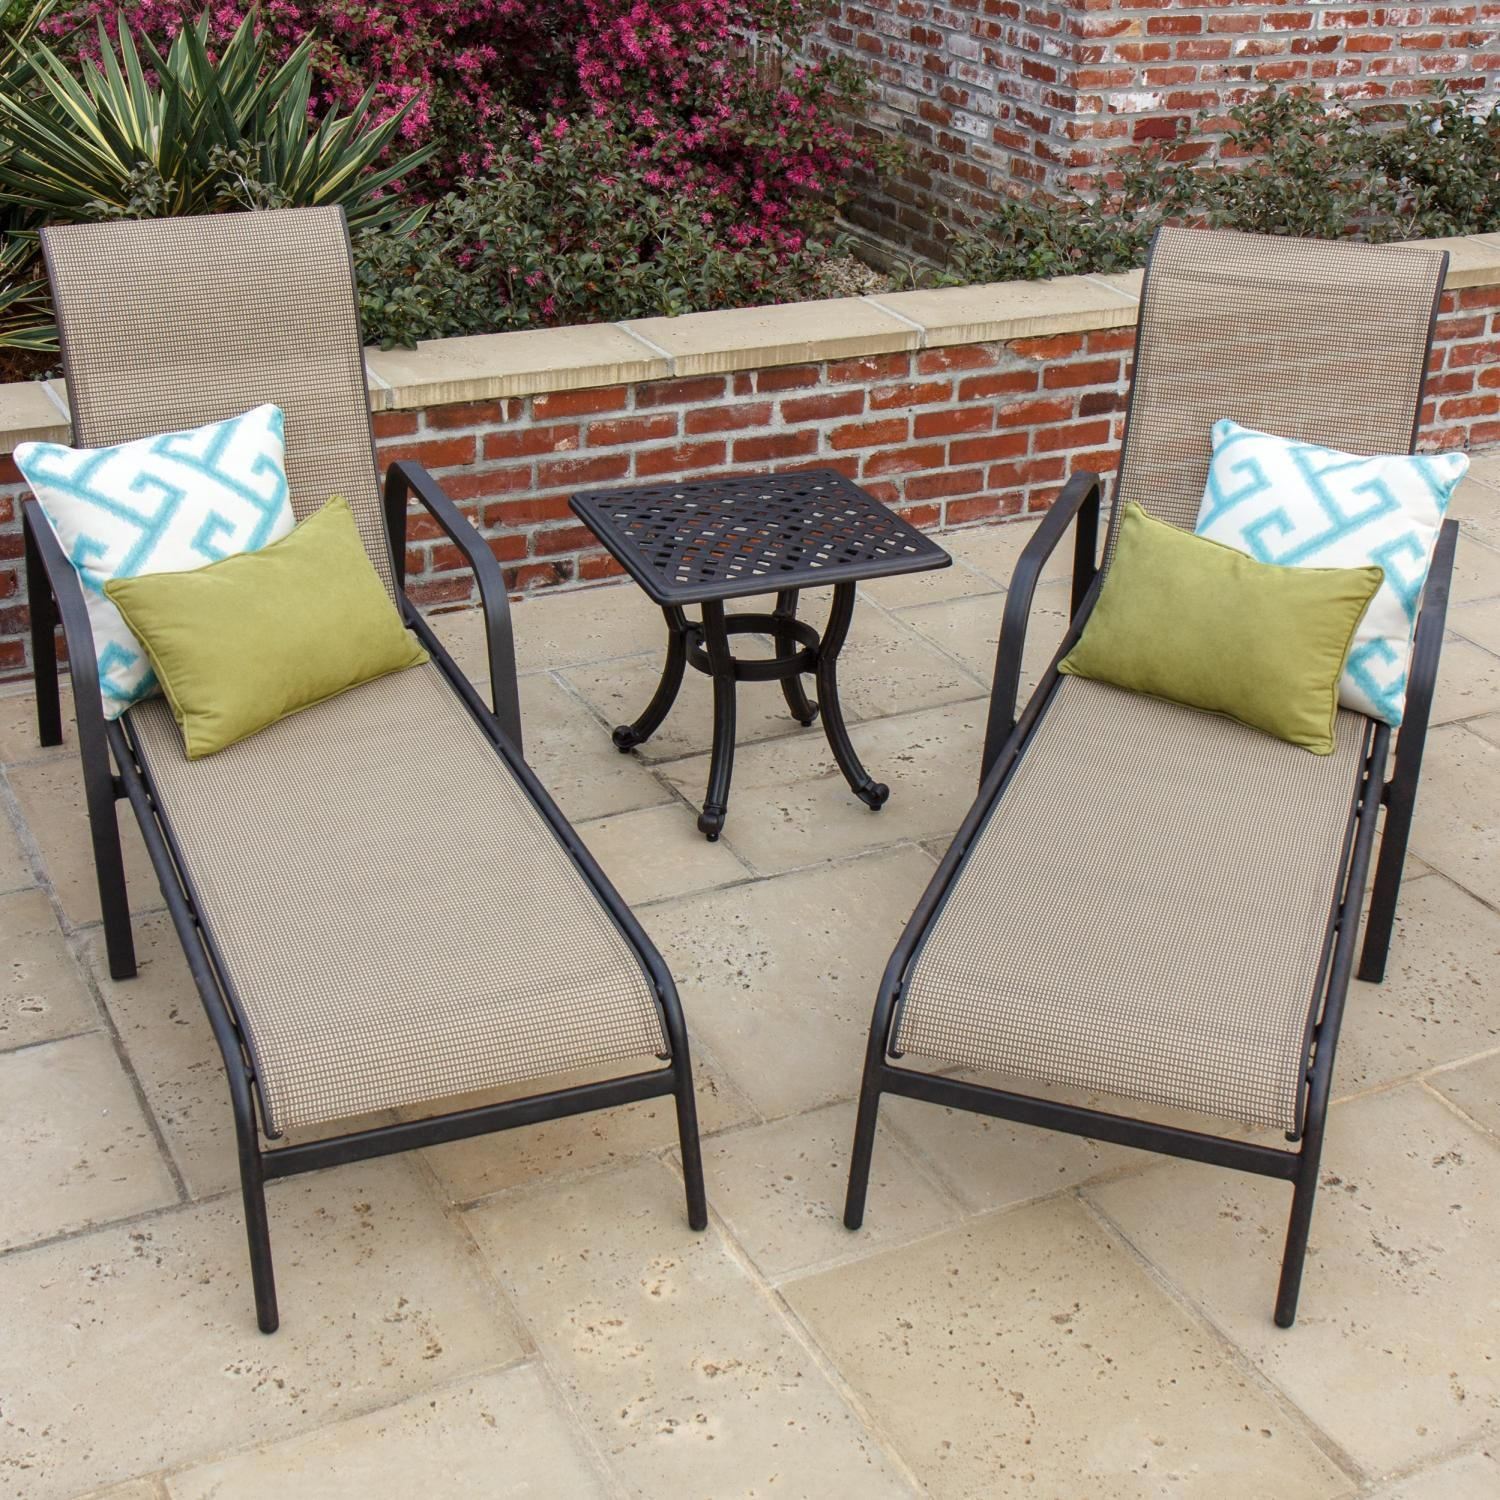 Madison Bay 2 Person Sling Patio Chaise Lounge Set With Cast